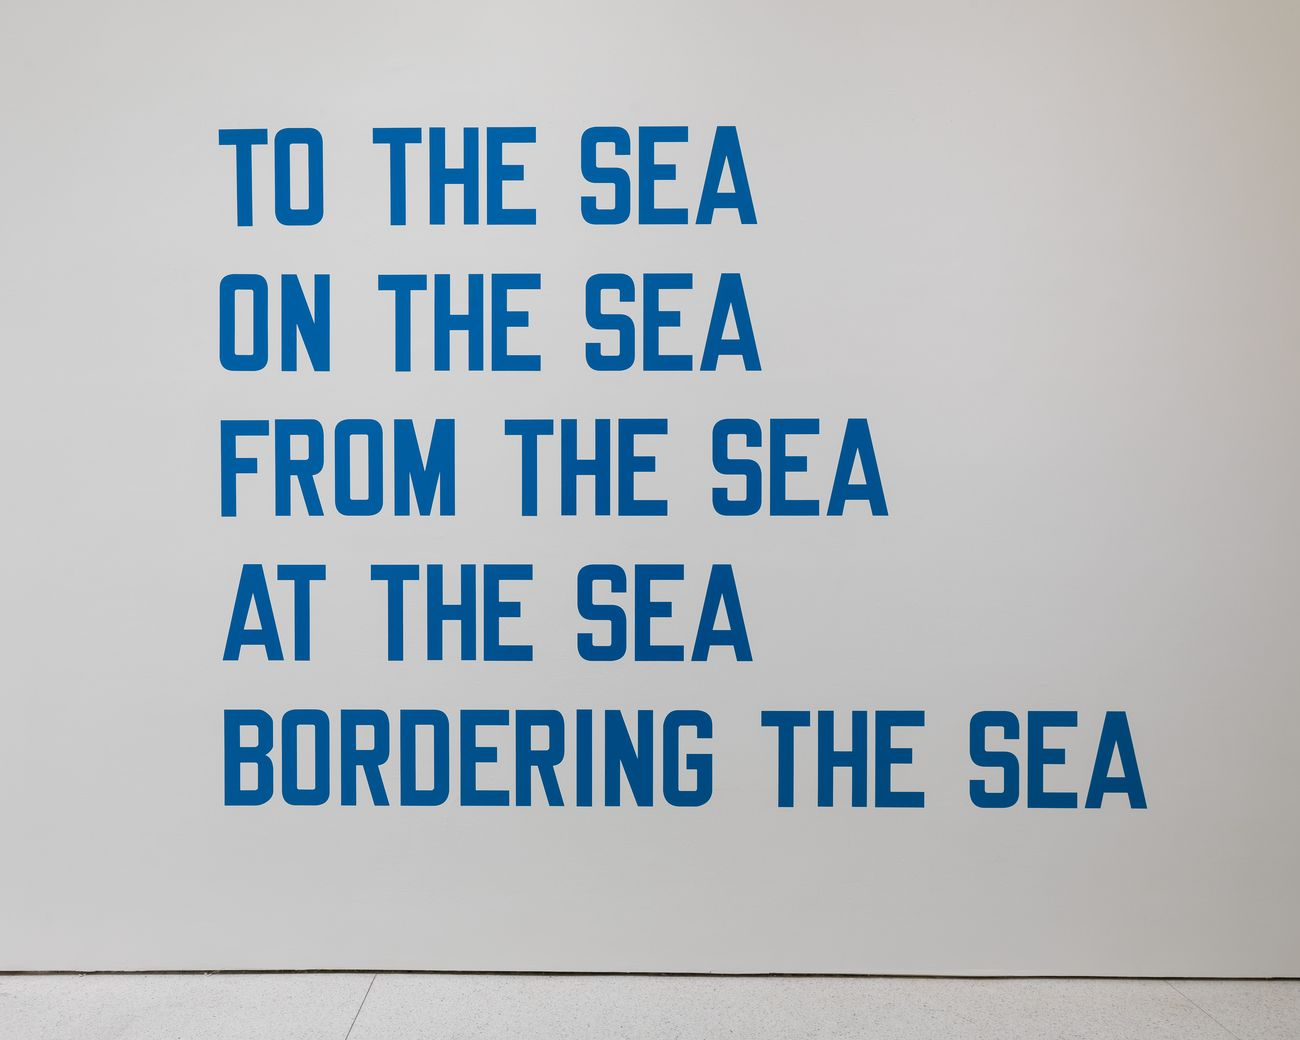 Lawrence Weiner, To the Sea - On the Sea - From the Sea - At the Sea - Bordering the Sea, 1970. Solomon R. Guggenheim Museum, New York, Collezione Panza © 2019 Lawrence Weiner - Artists Rights Society (ARS), New York